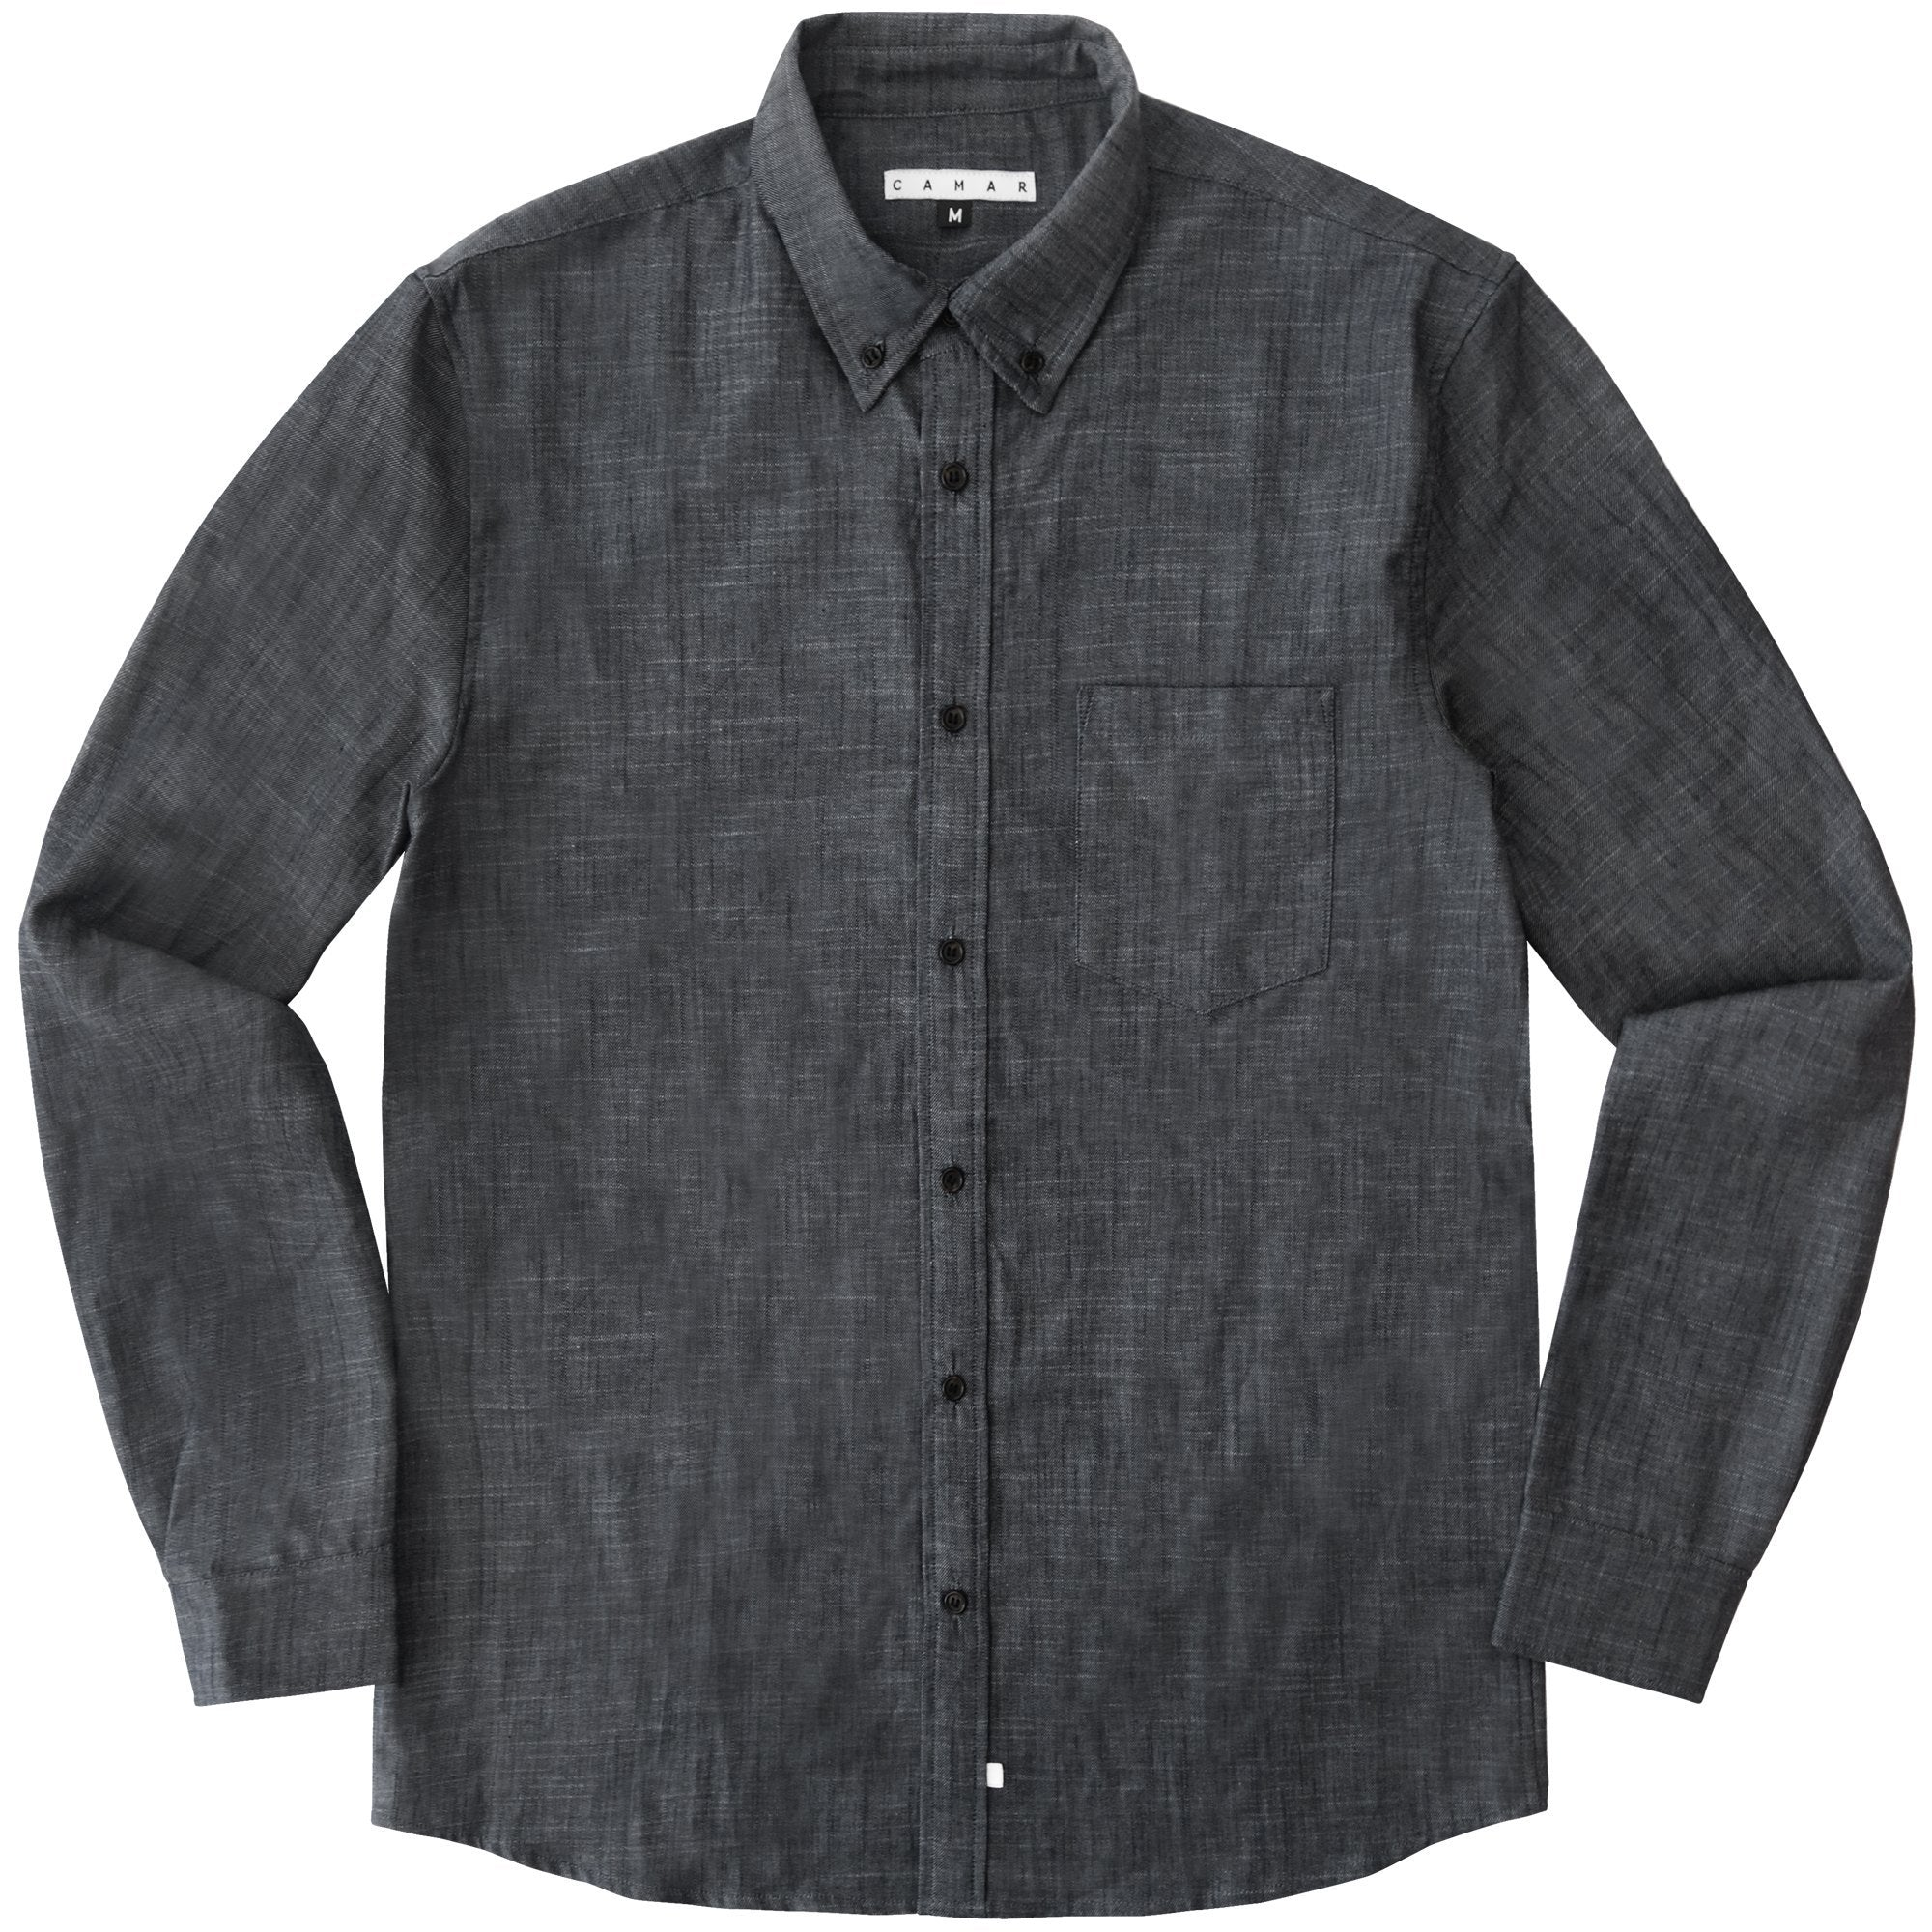 Antique Chambray Button Up